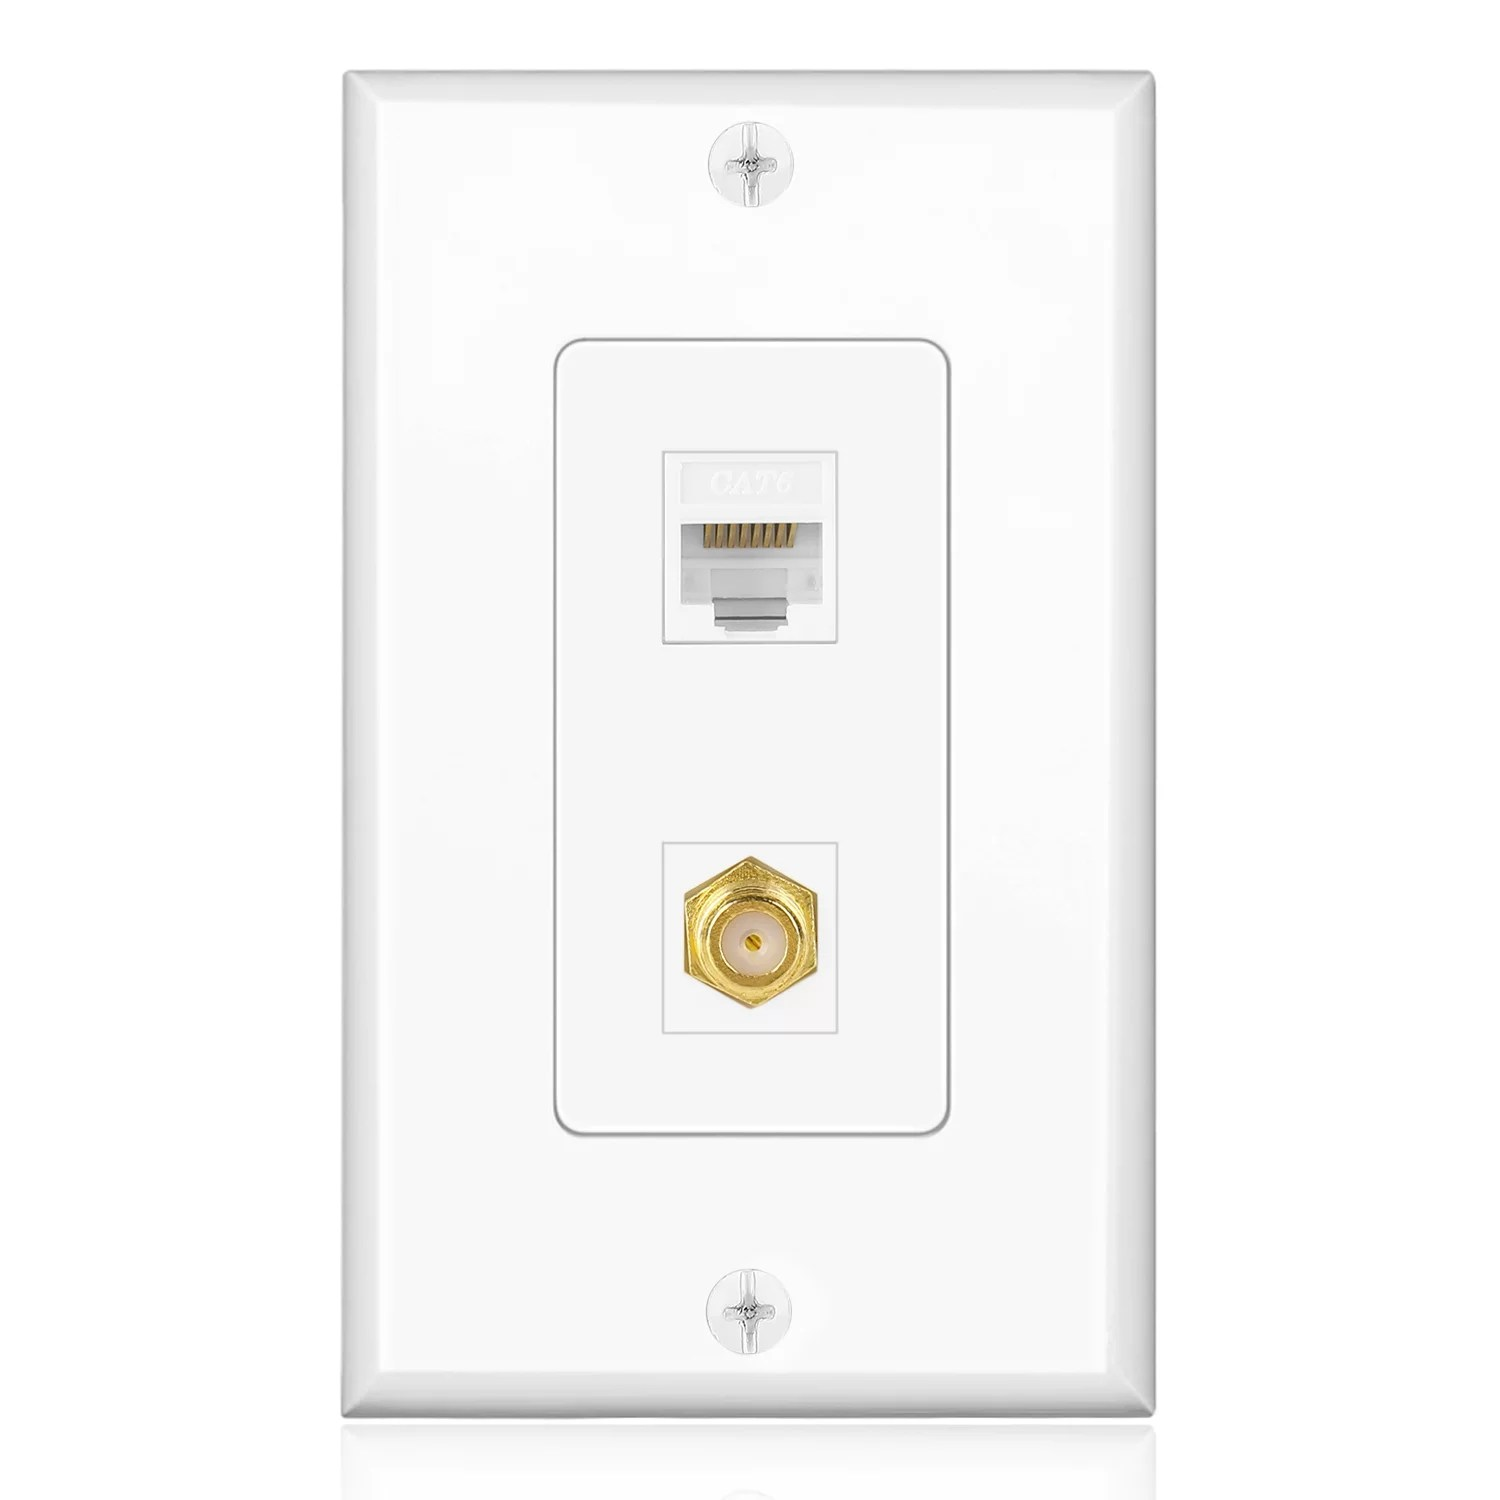 medium resolution of ethernet coax wall plate with 1 rj45 port and 1 gold plated tv f rv furnace wiring diagrams tv wall plate wiring diagram rv